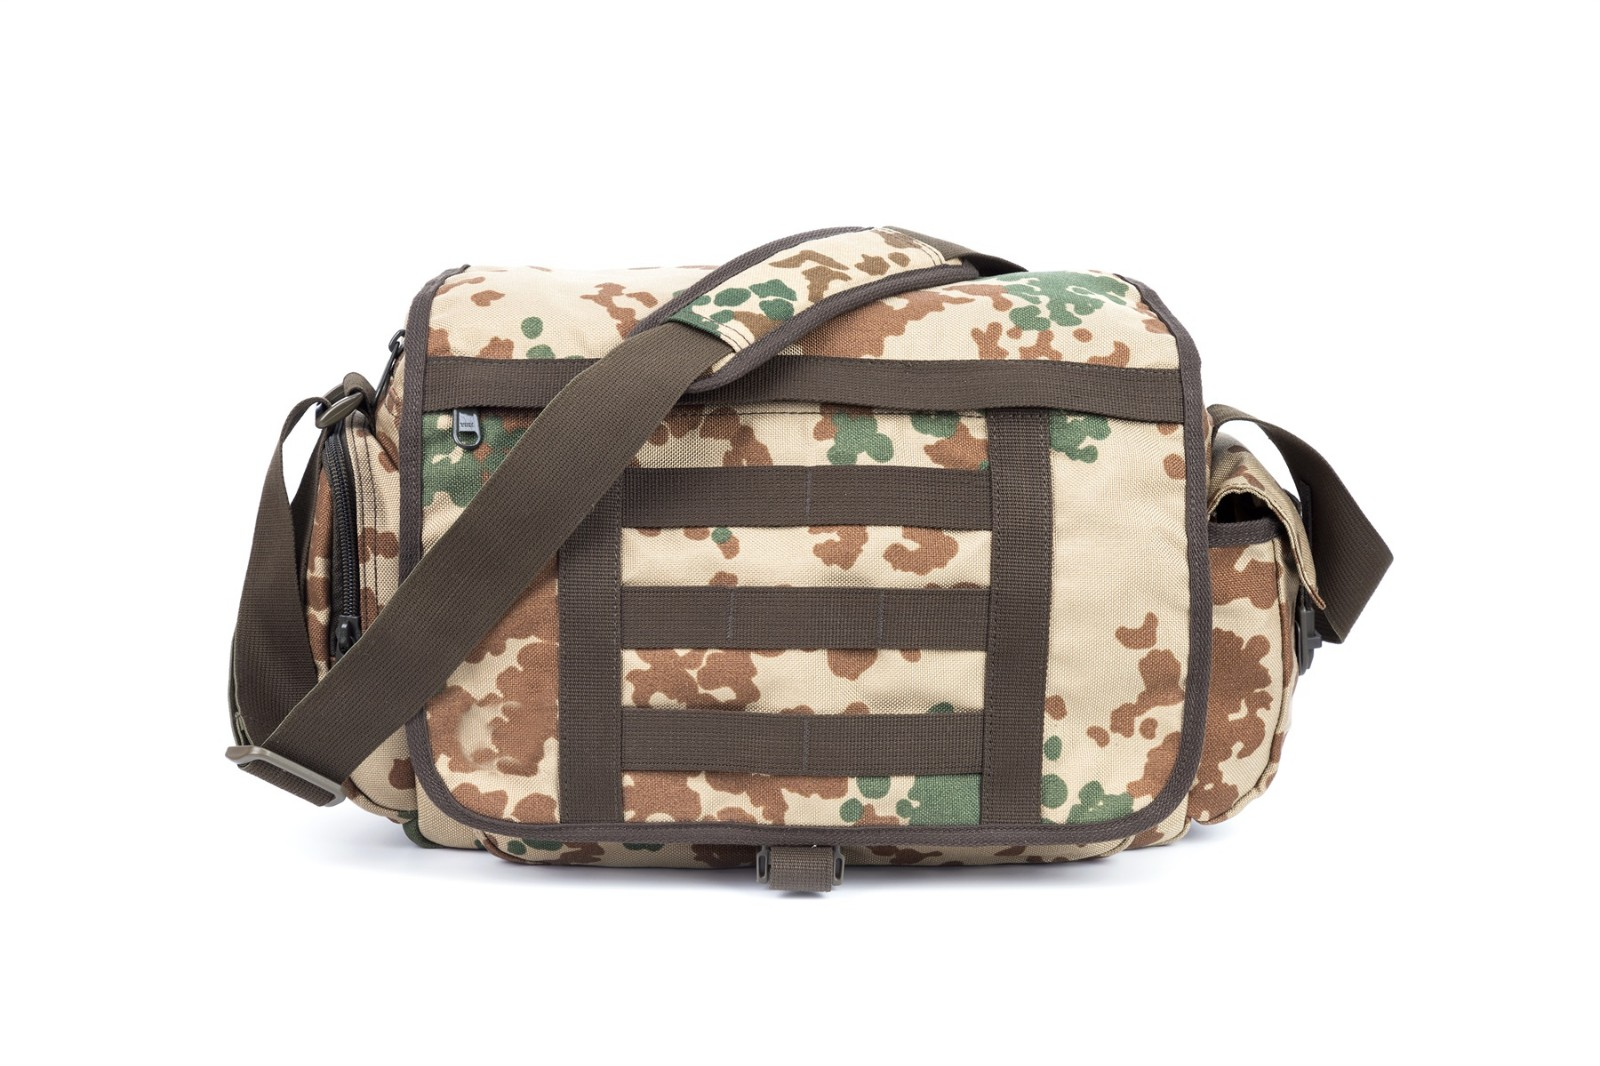 GF bags-Find Military Gear Bags Military Messenger Bag From GF Bags